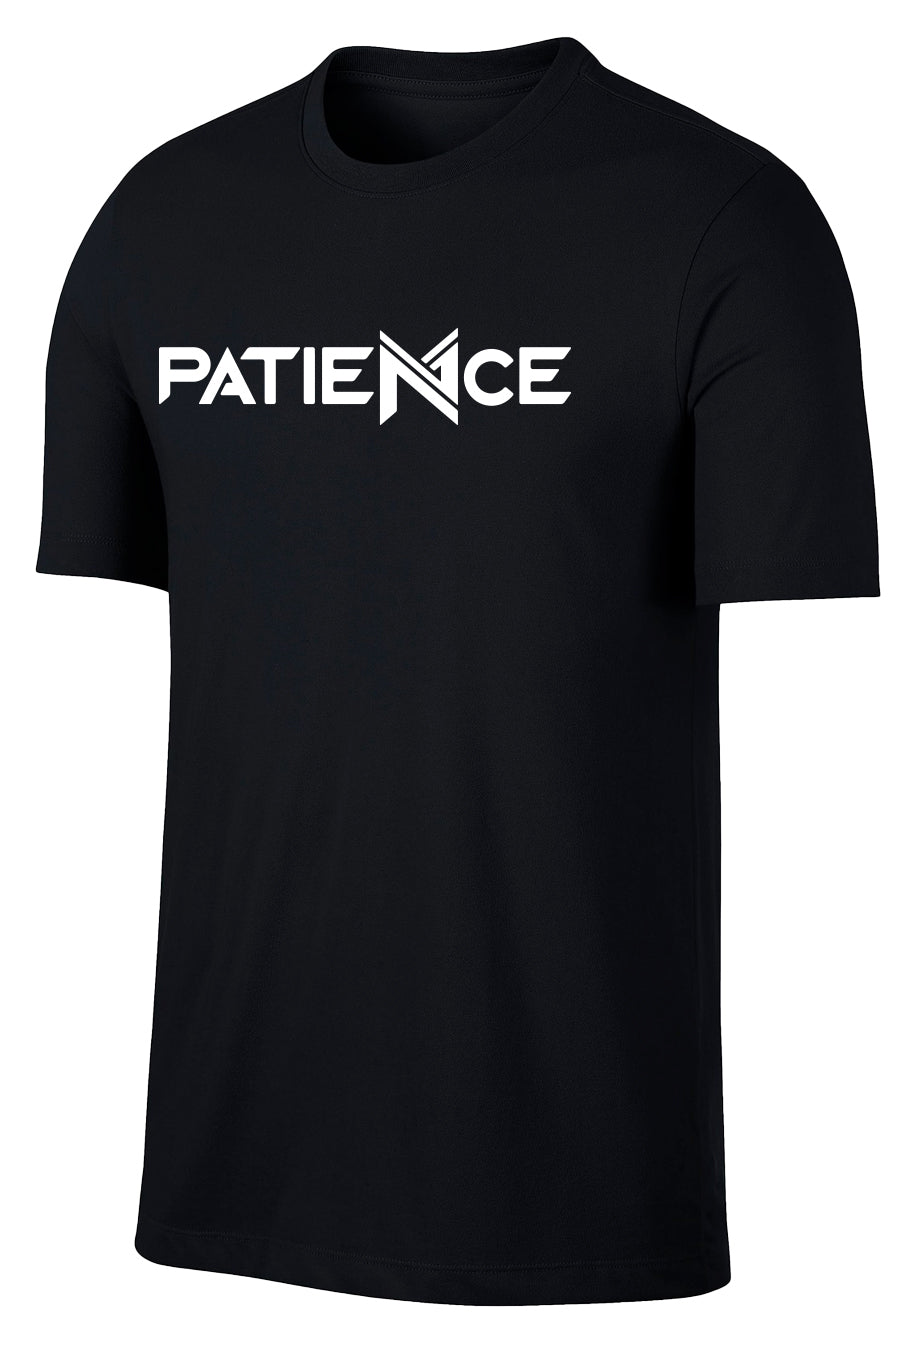 Michael Norman PATIENCE Tee